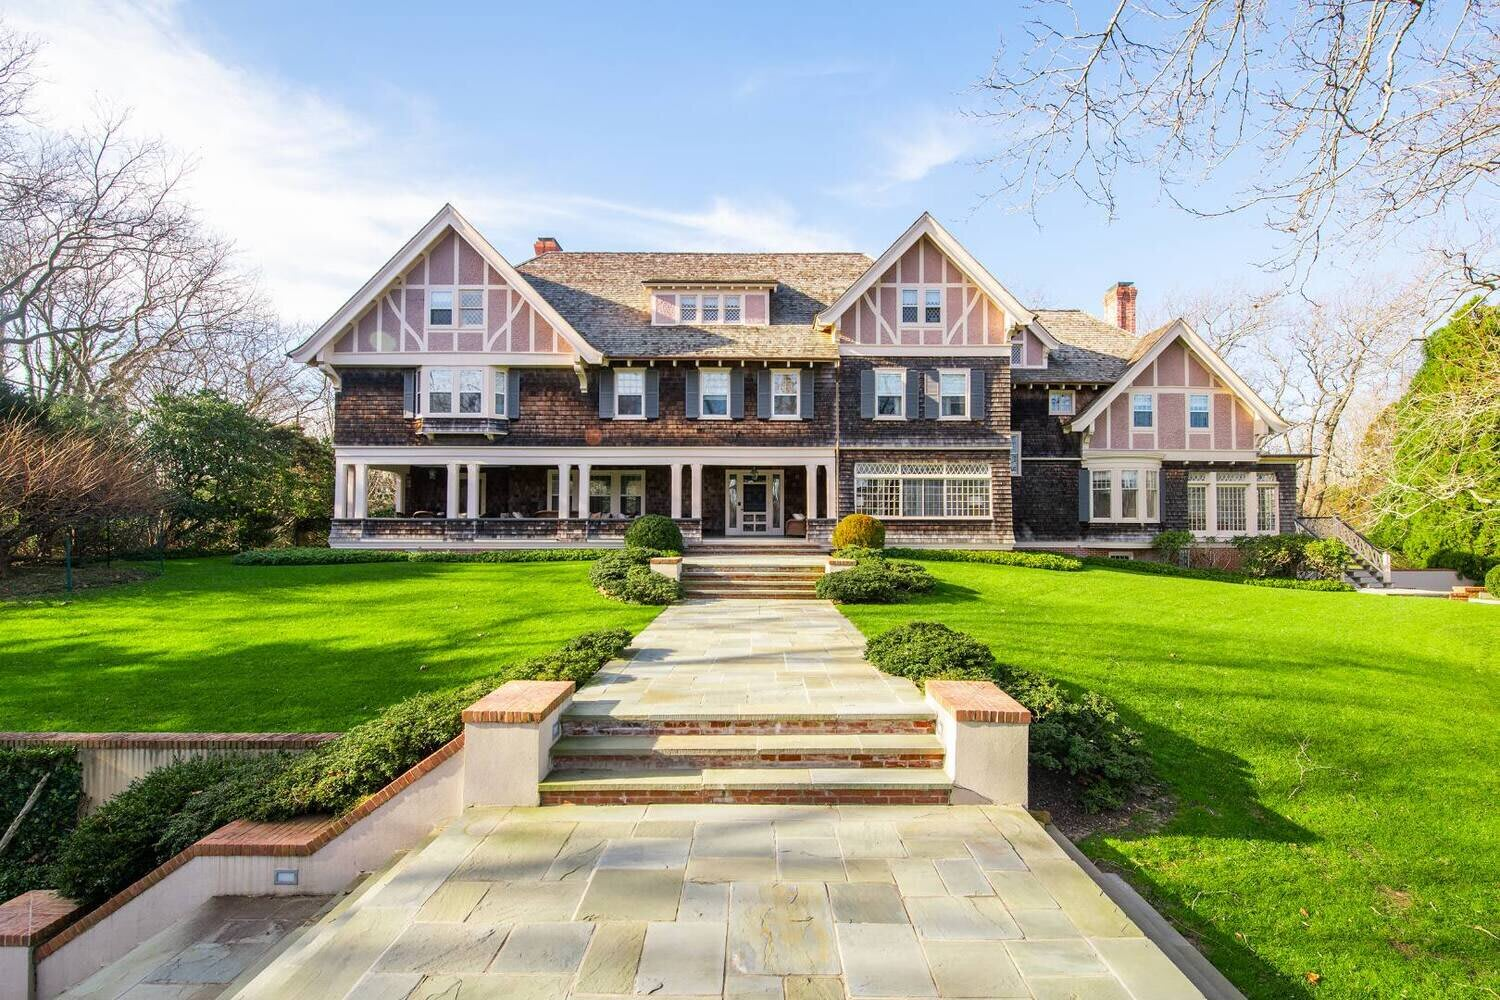 THIS EXCEPTIONAL HOME PRESERVES OVER A CENTURY OF EAST HAMPTON HISTORY